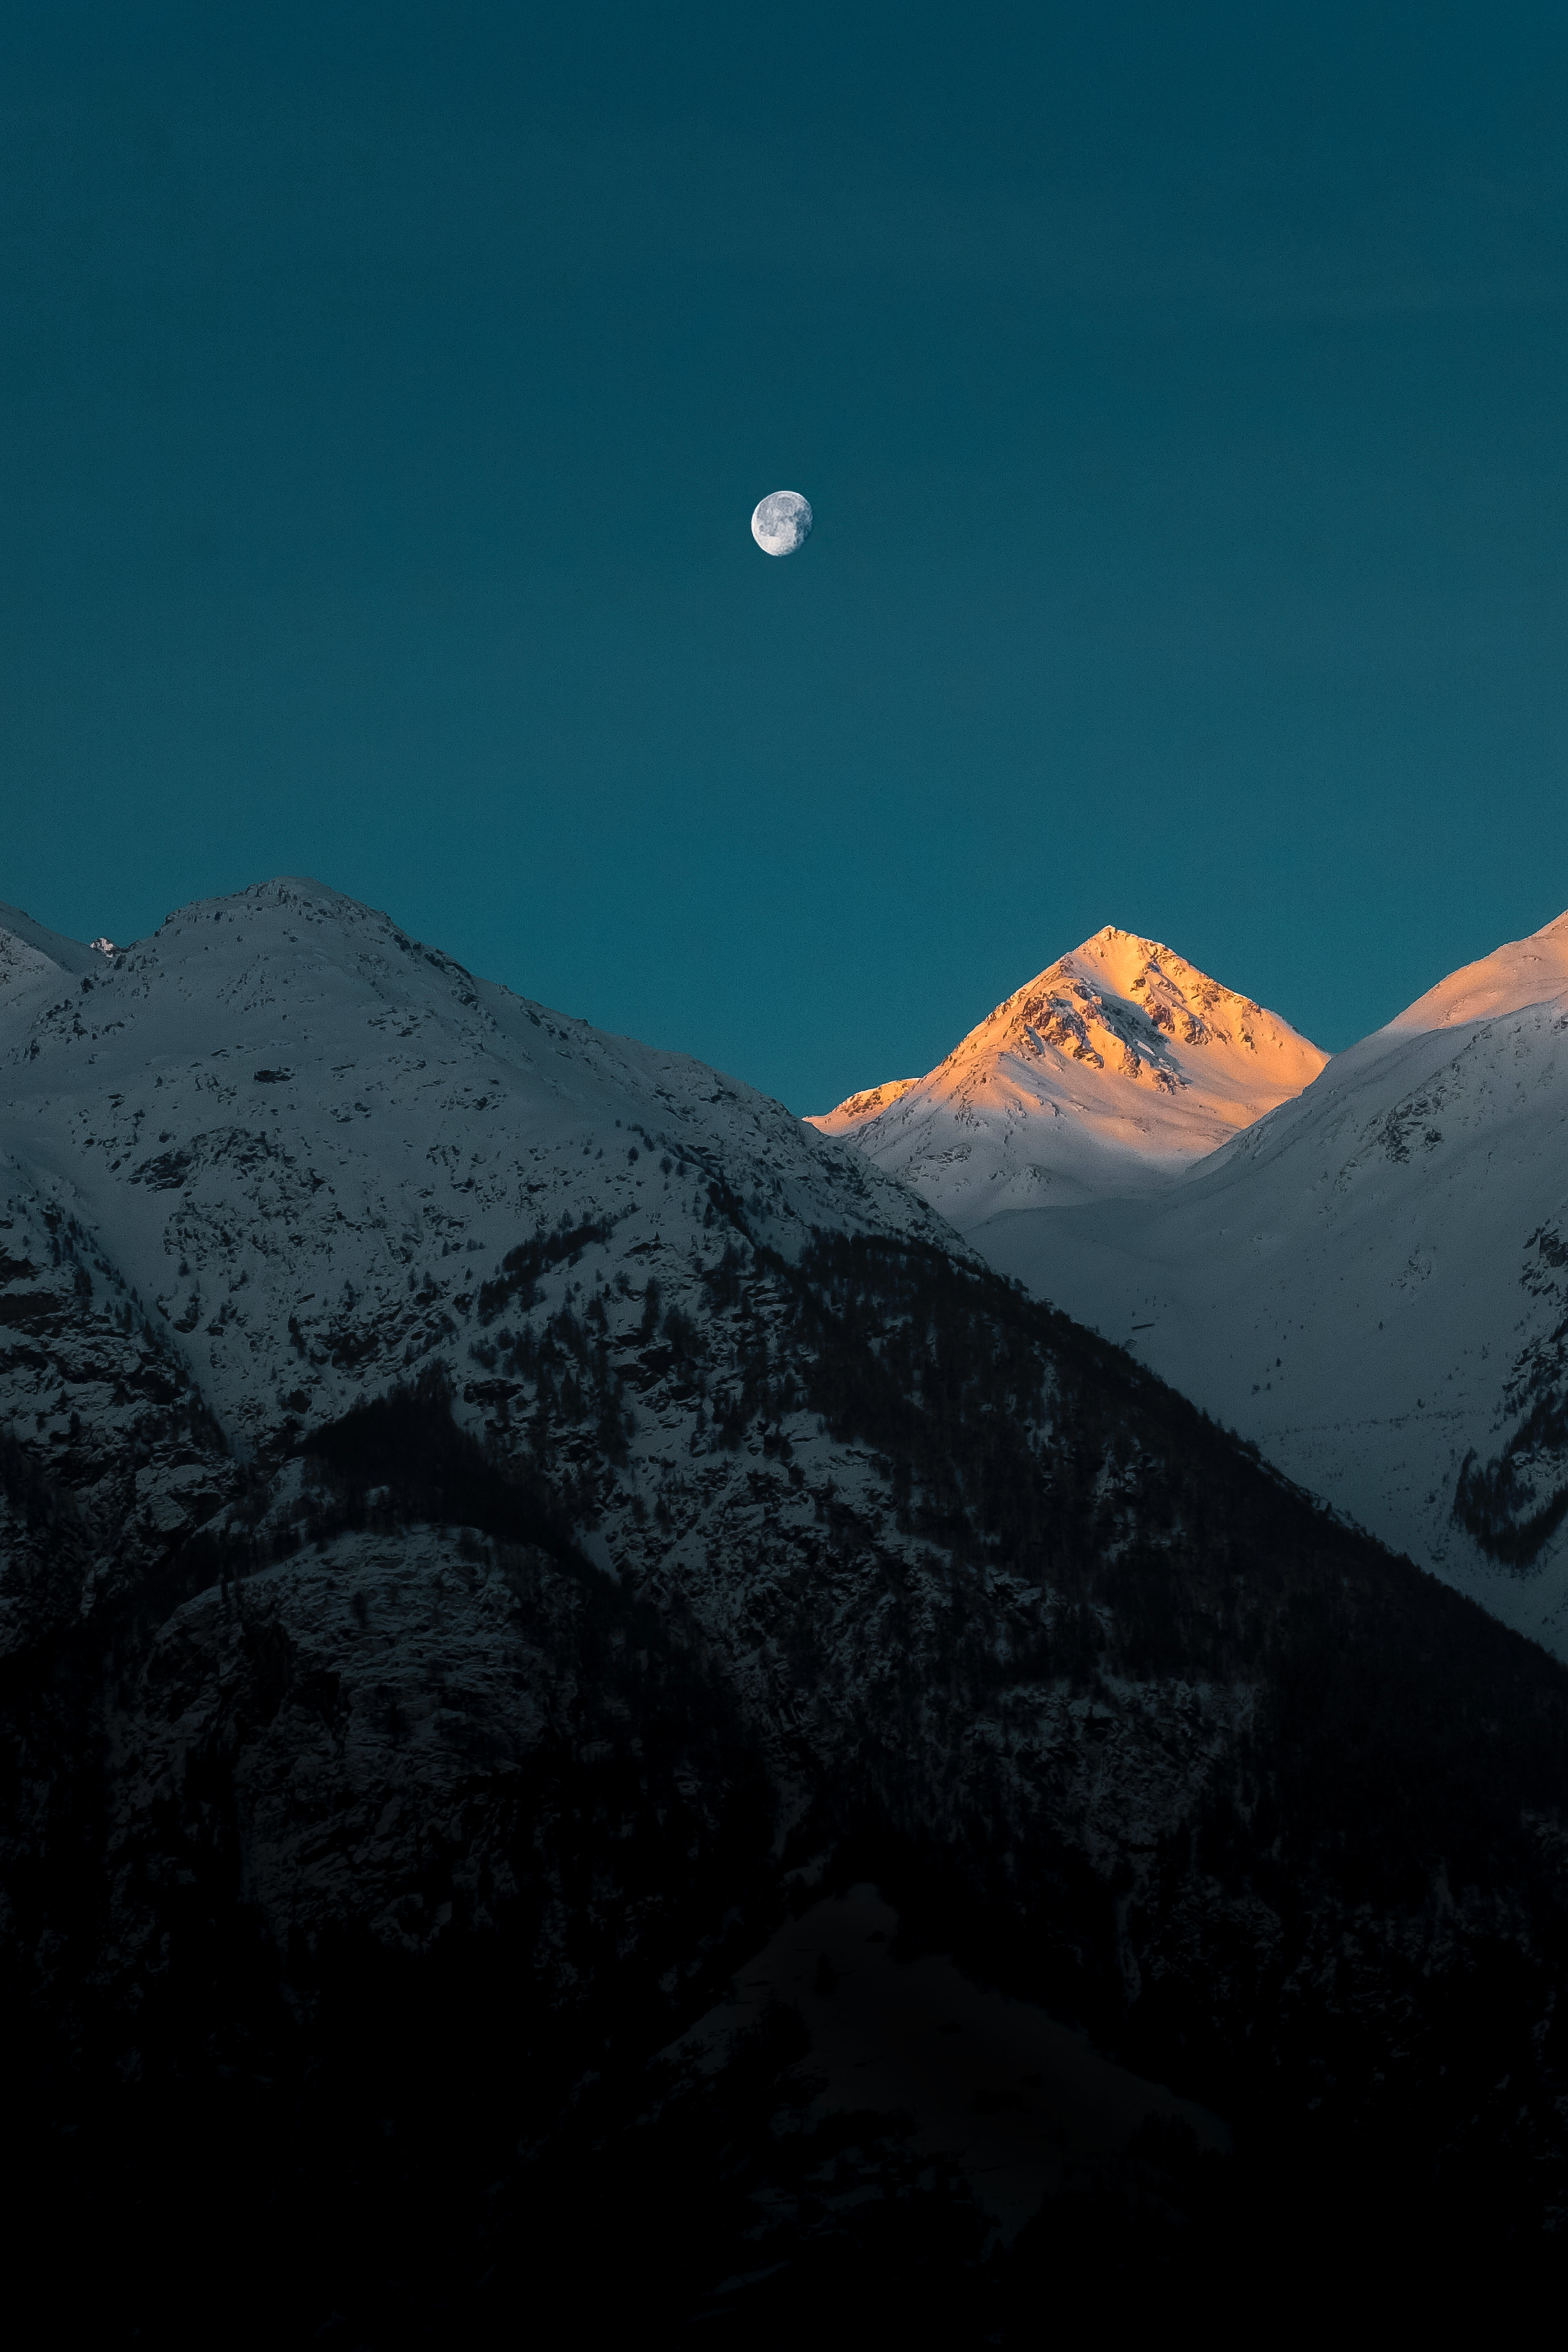 72013 download wallpaper Nature, Mountains, Twilight, Moon, Vertex, Top, Dusk, Snow Covered, Snowbound screensavers and pictures for free